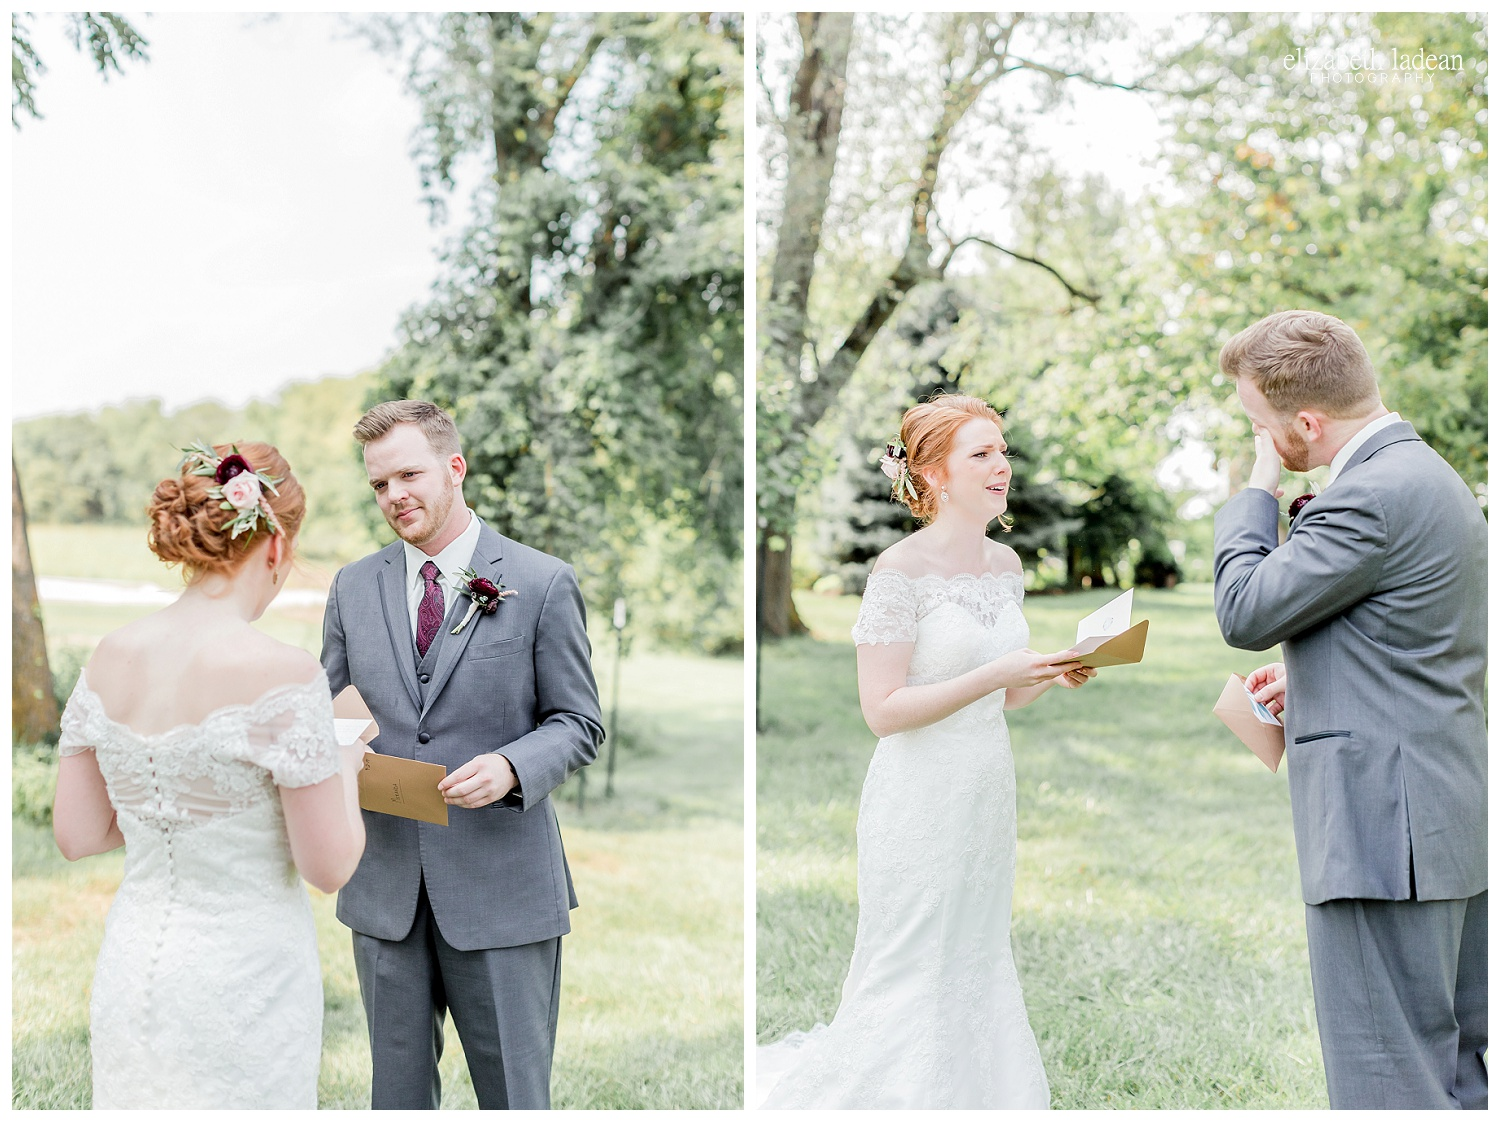 Burgundy-and-Gold-Wedding-Kansas-City-The-Legacy-at-Green-Hills-M+T0902-Elizabeth-Ladean-Photography-photo-_2267.jpg